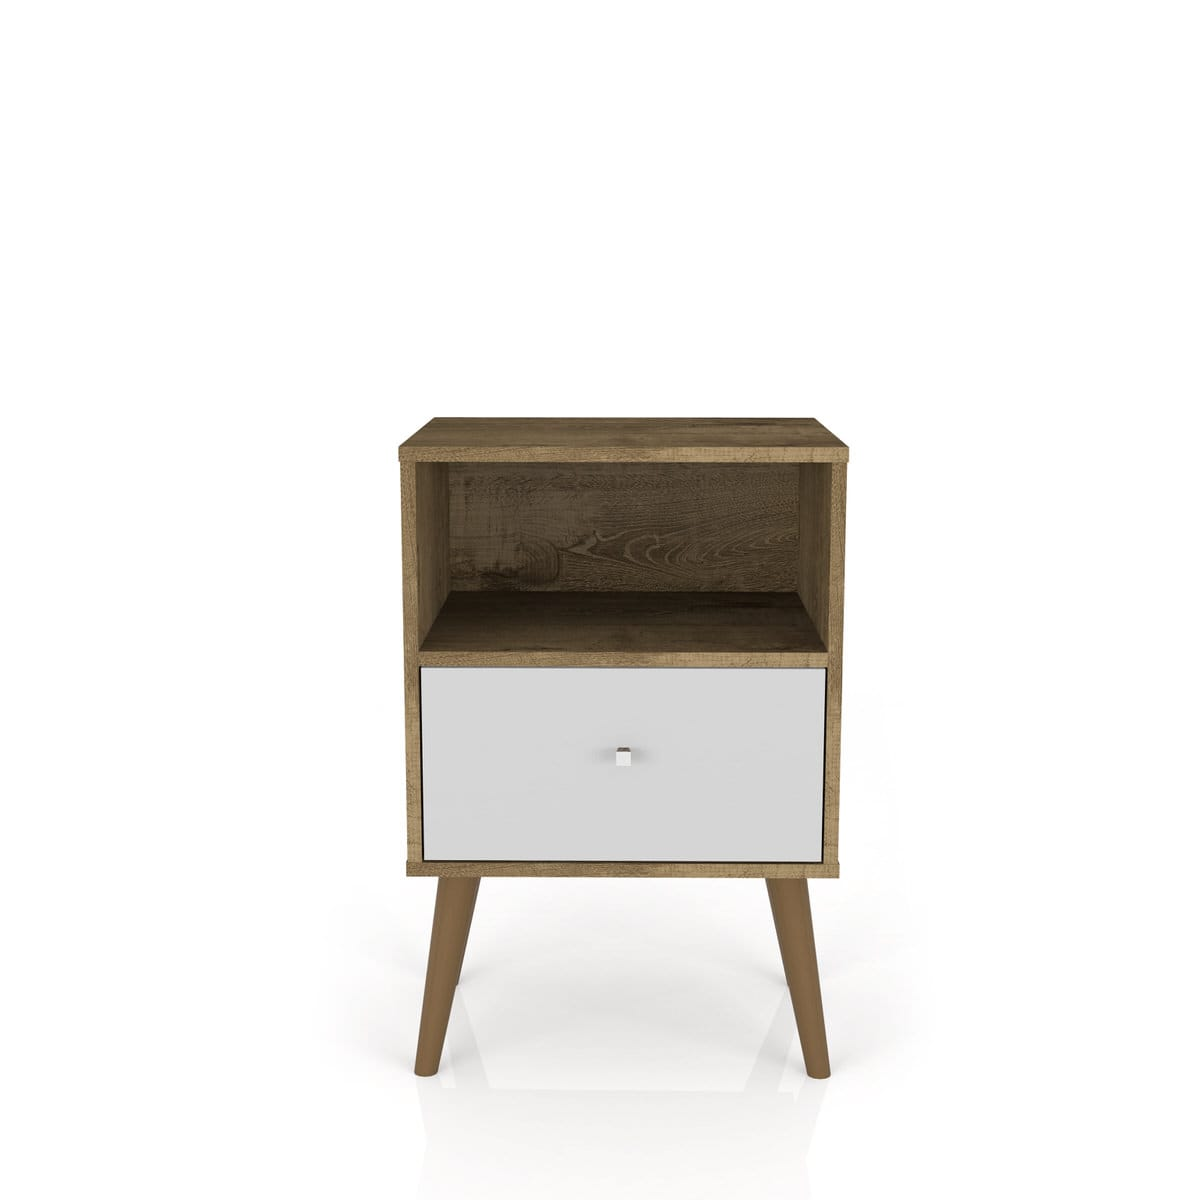 Liberty Mid Century Modern Rustic Brown White Nightstand 1 0 W 1 Cubby Space 1 Drawer By Manhattan Comfort